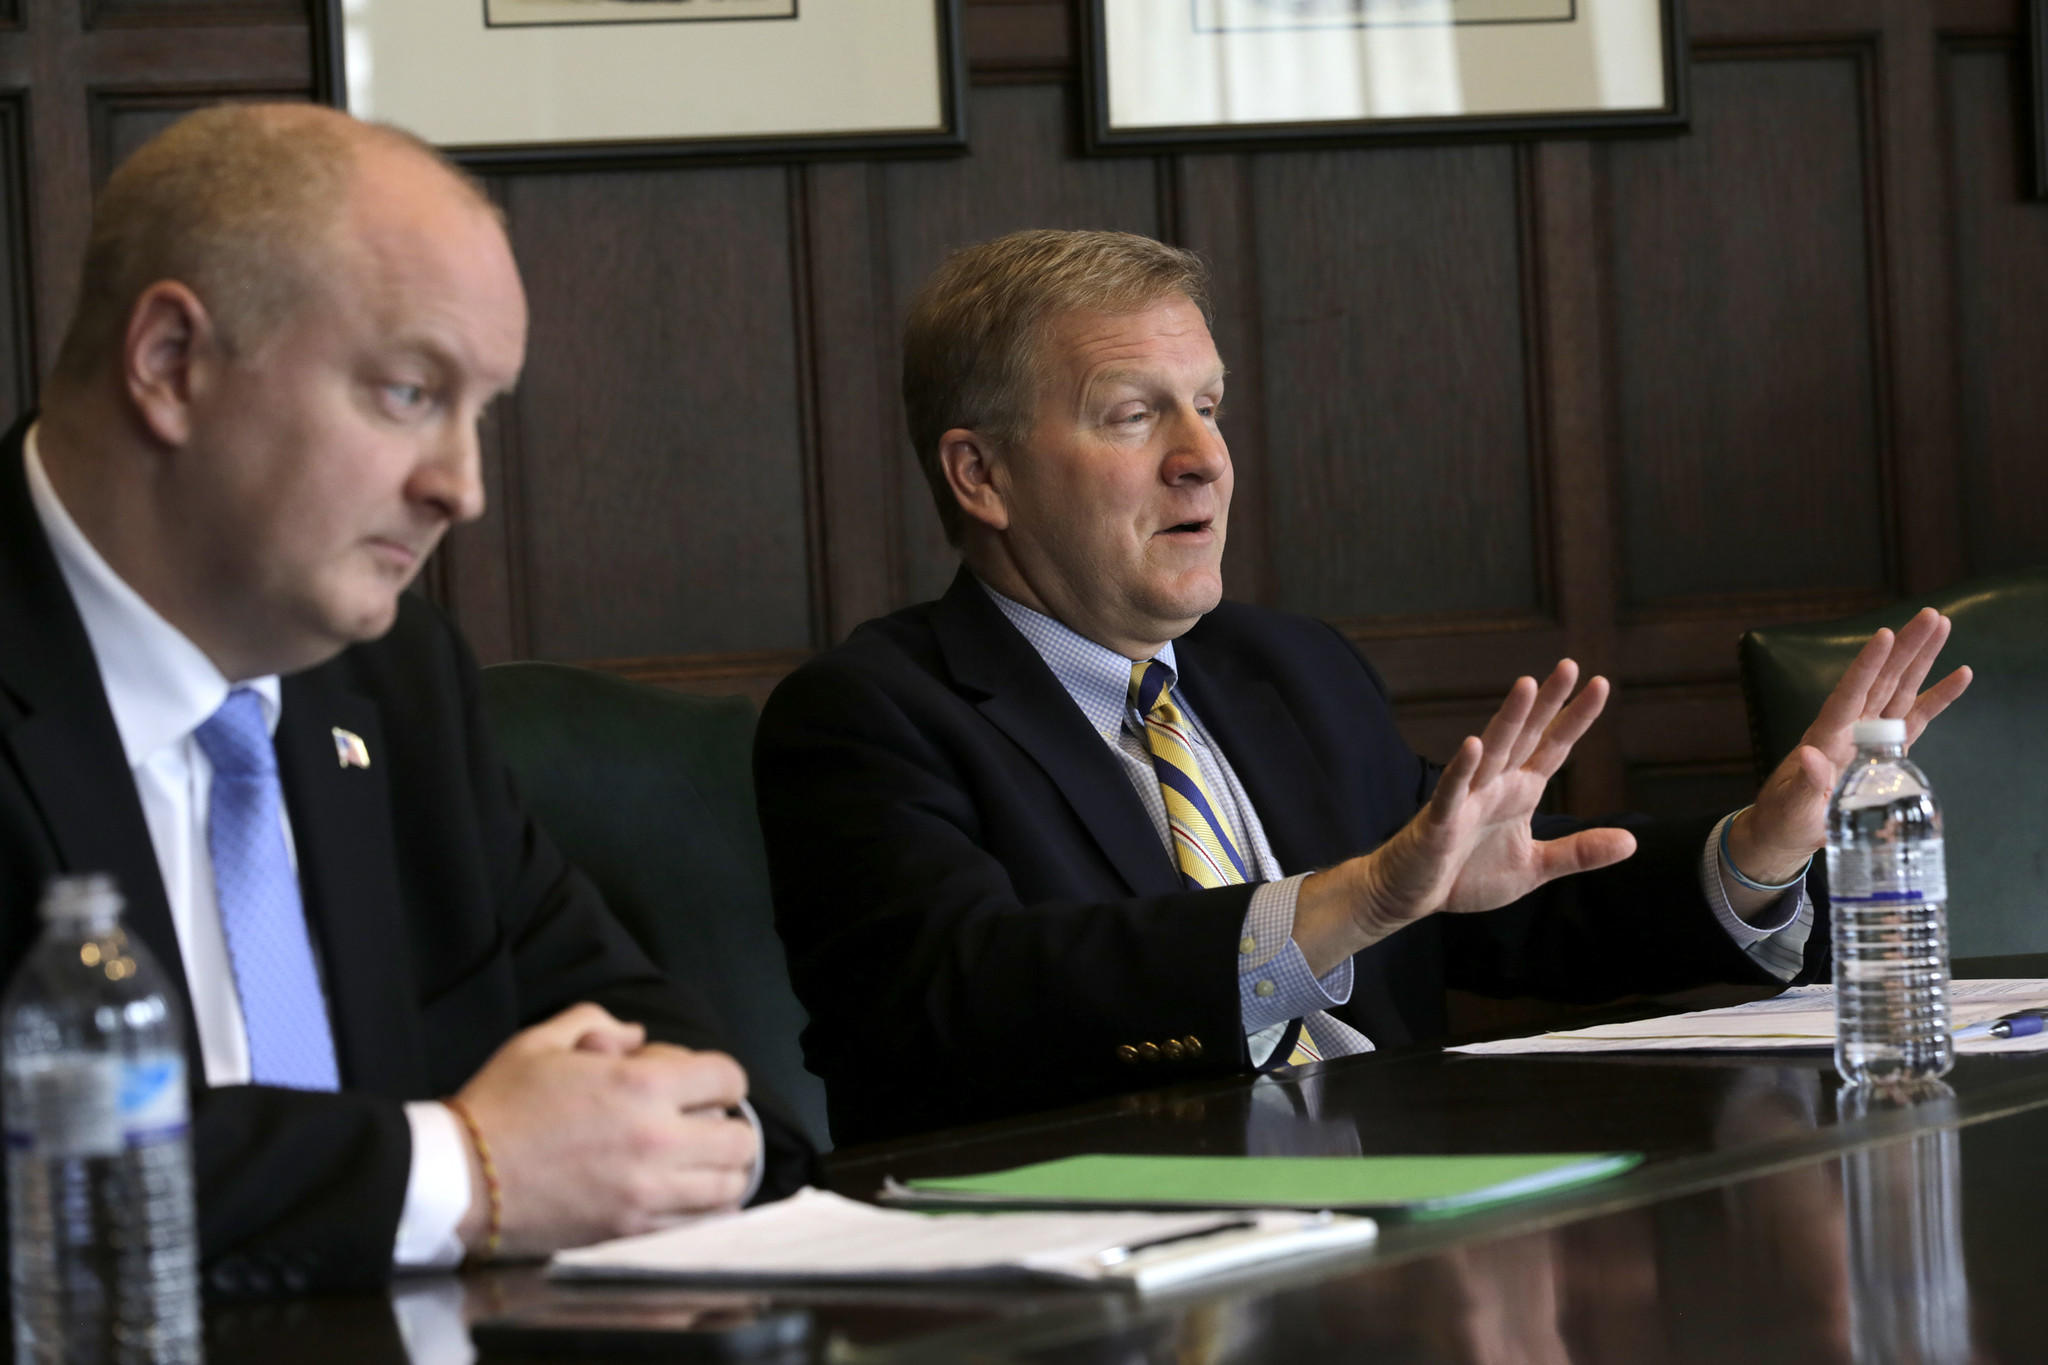 Republican candidates for Illinois Treasurer, DuPage County Auditor Bob Grogan and State Rep. Tom Cross, from left, meet with the Chicago Tribune Editorial Board Thursday, Feb. 13, 2014.